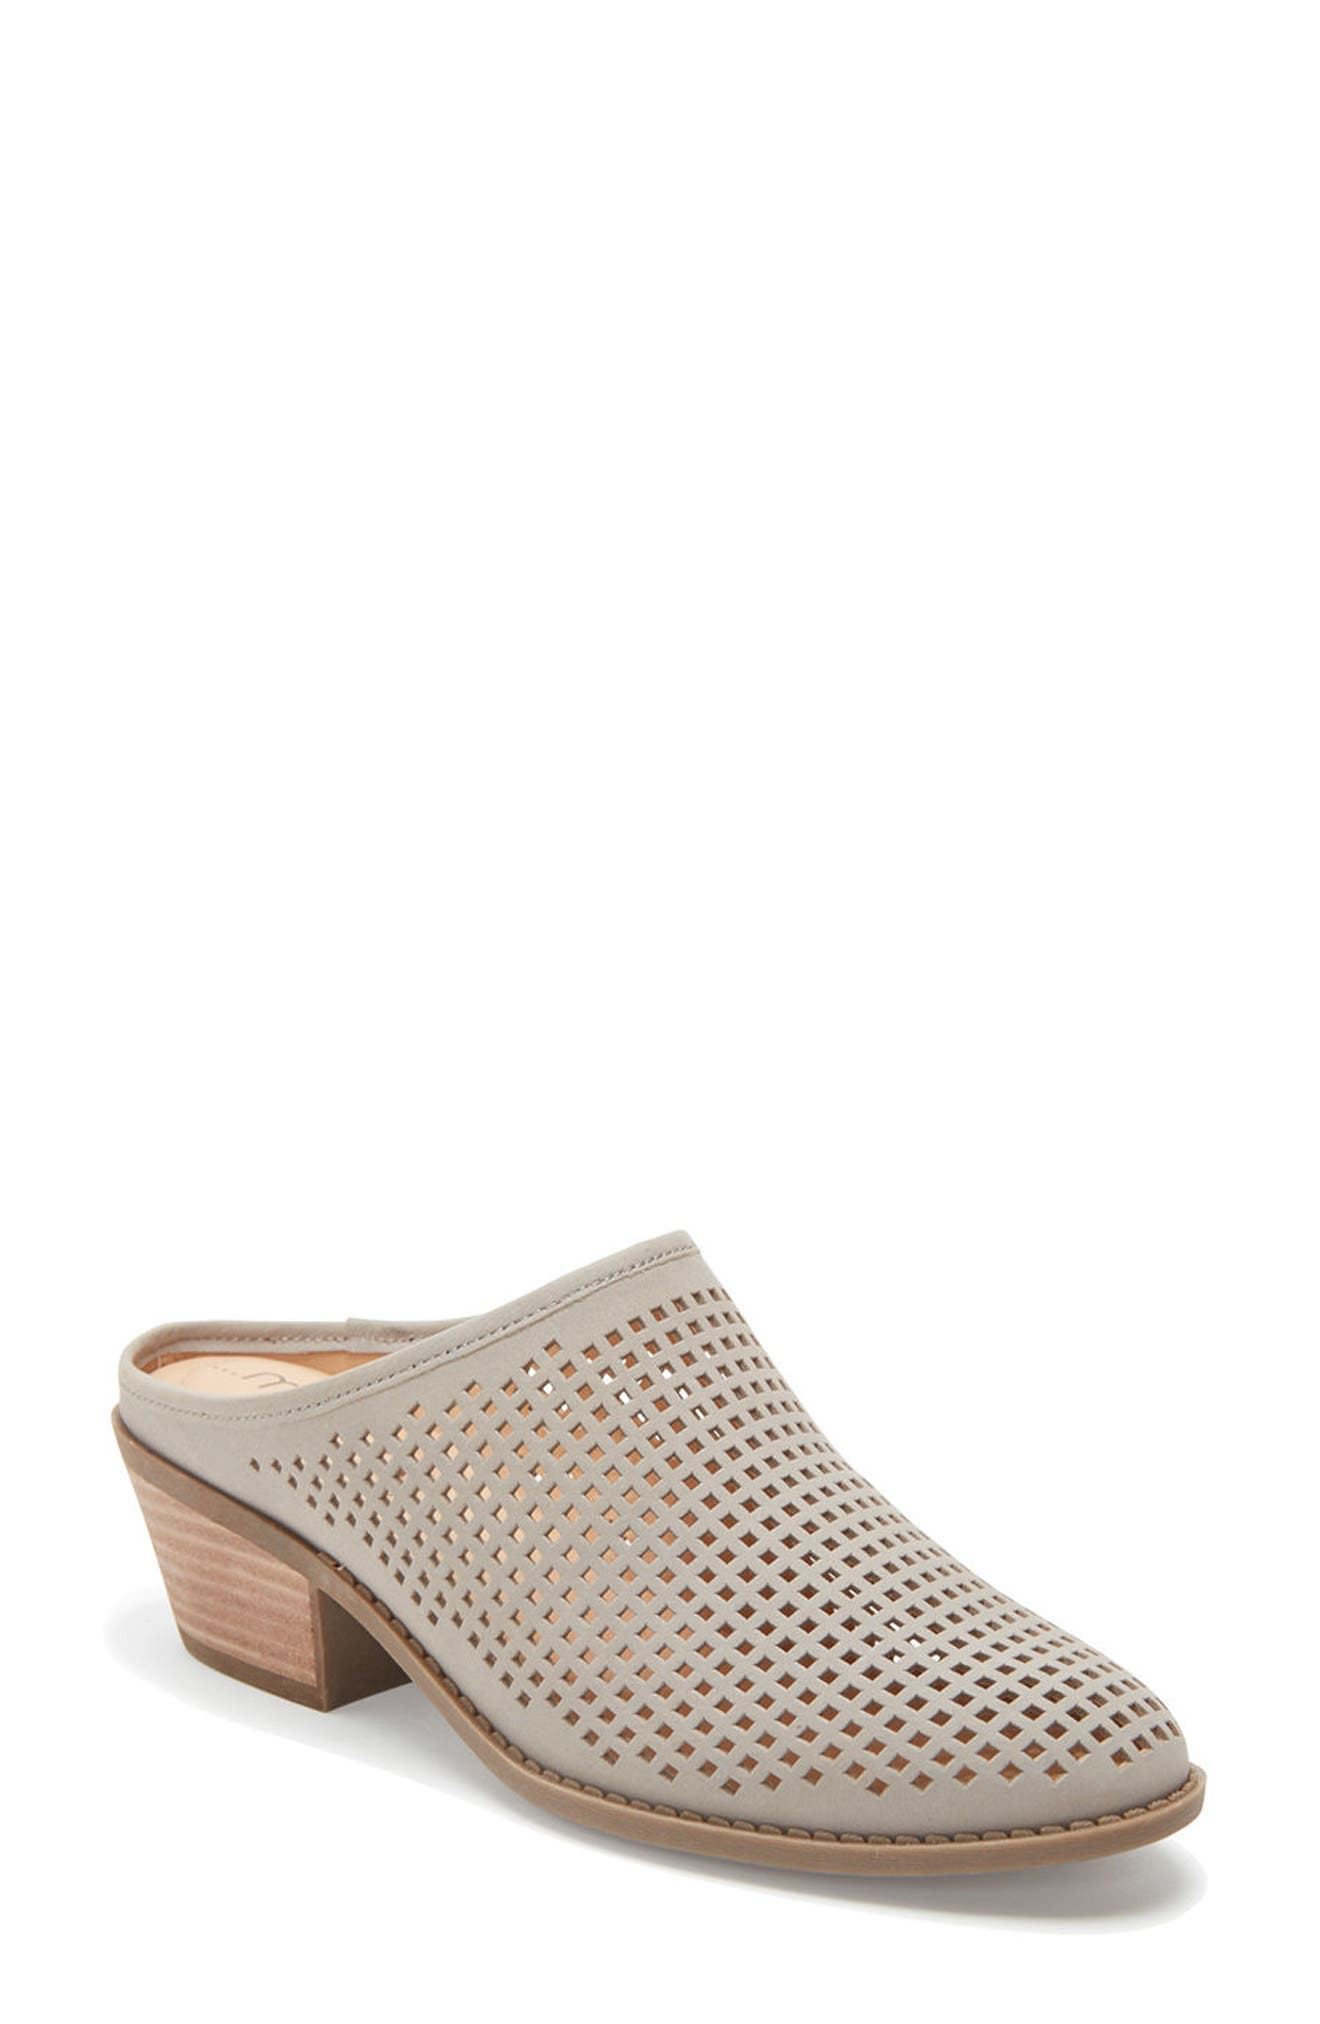 Zara Block Heel Mule,                             Main thumbnail 1, color,                             082